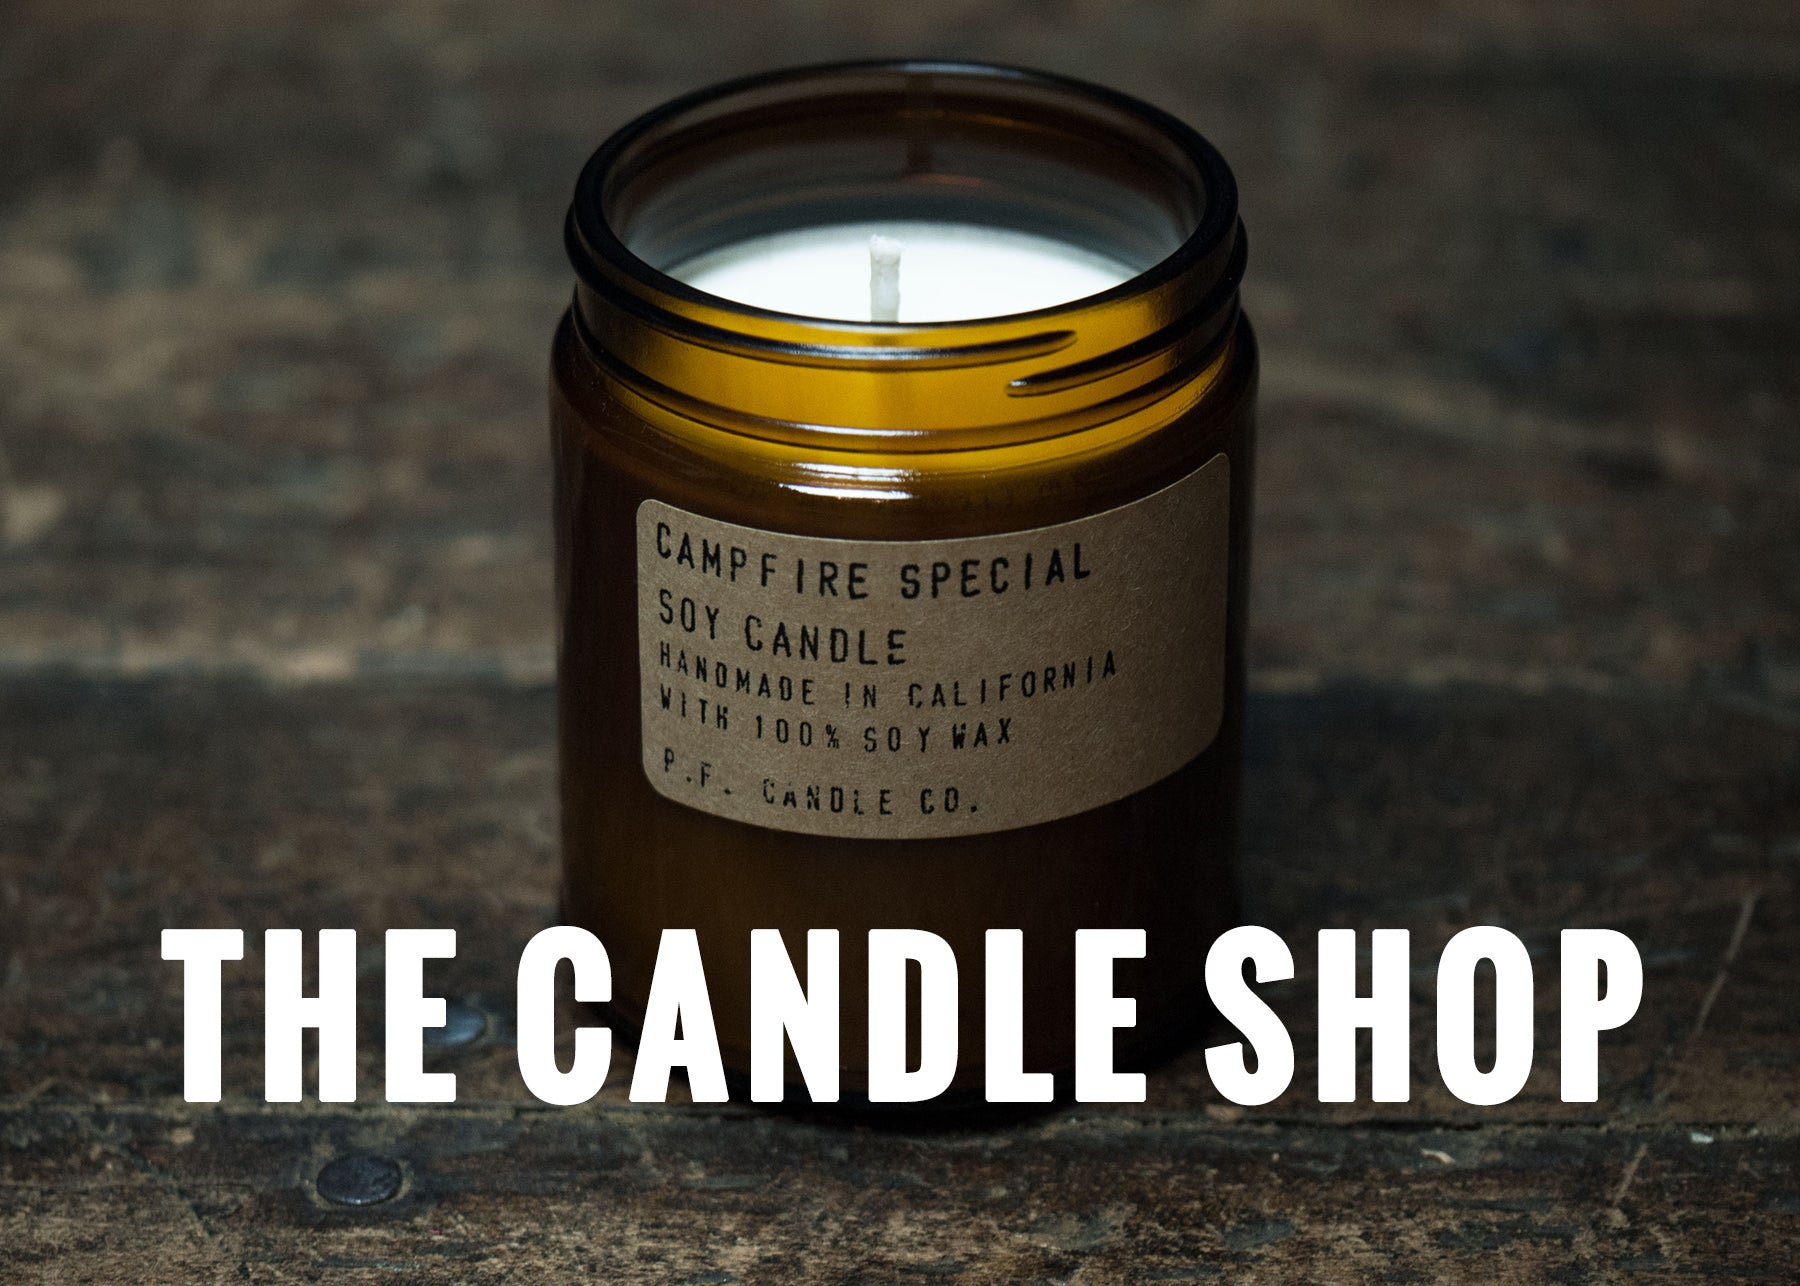 MANCANDLES AT THE LODGE MAN SHOP